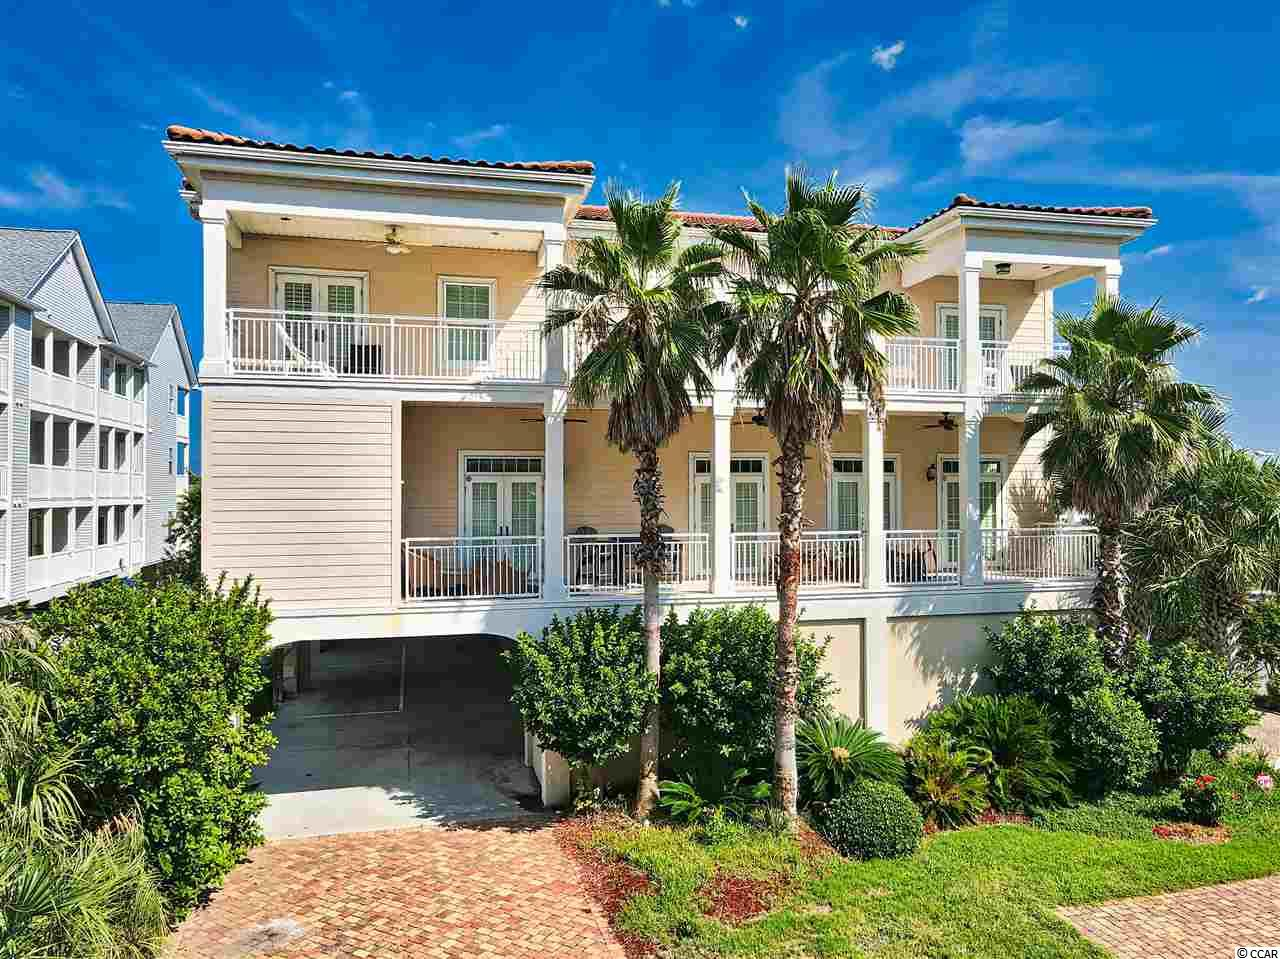 Private Townhome with a private entrance, small 4 unit building with a pier, lots of space for the entire family with each bedroom having its own bathroom. Beautiful luxury Mediterranean style 5 bedroom 5-1/2 bath Townhome in the Cherry Grove section of North Myrtle Beach. Great location - just across the street from the ocean and definitely a rare find. High ceilings and crown molding throughout, over-sized rooms, hardwood flooring in the living area, tile in baths and an elevator. The living area features a fireplace, built-ins and wet bar for your enjoyment. Kitchen features granite counter-tops, SS appliances, breakfast bar and ice maker. Relax on the balcony and enjoy the views of the blue Atlantic.  If you have been looking for the ultimate in luxury your search has ended. This is it!